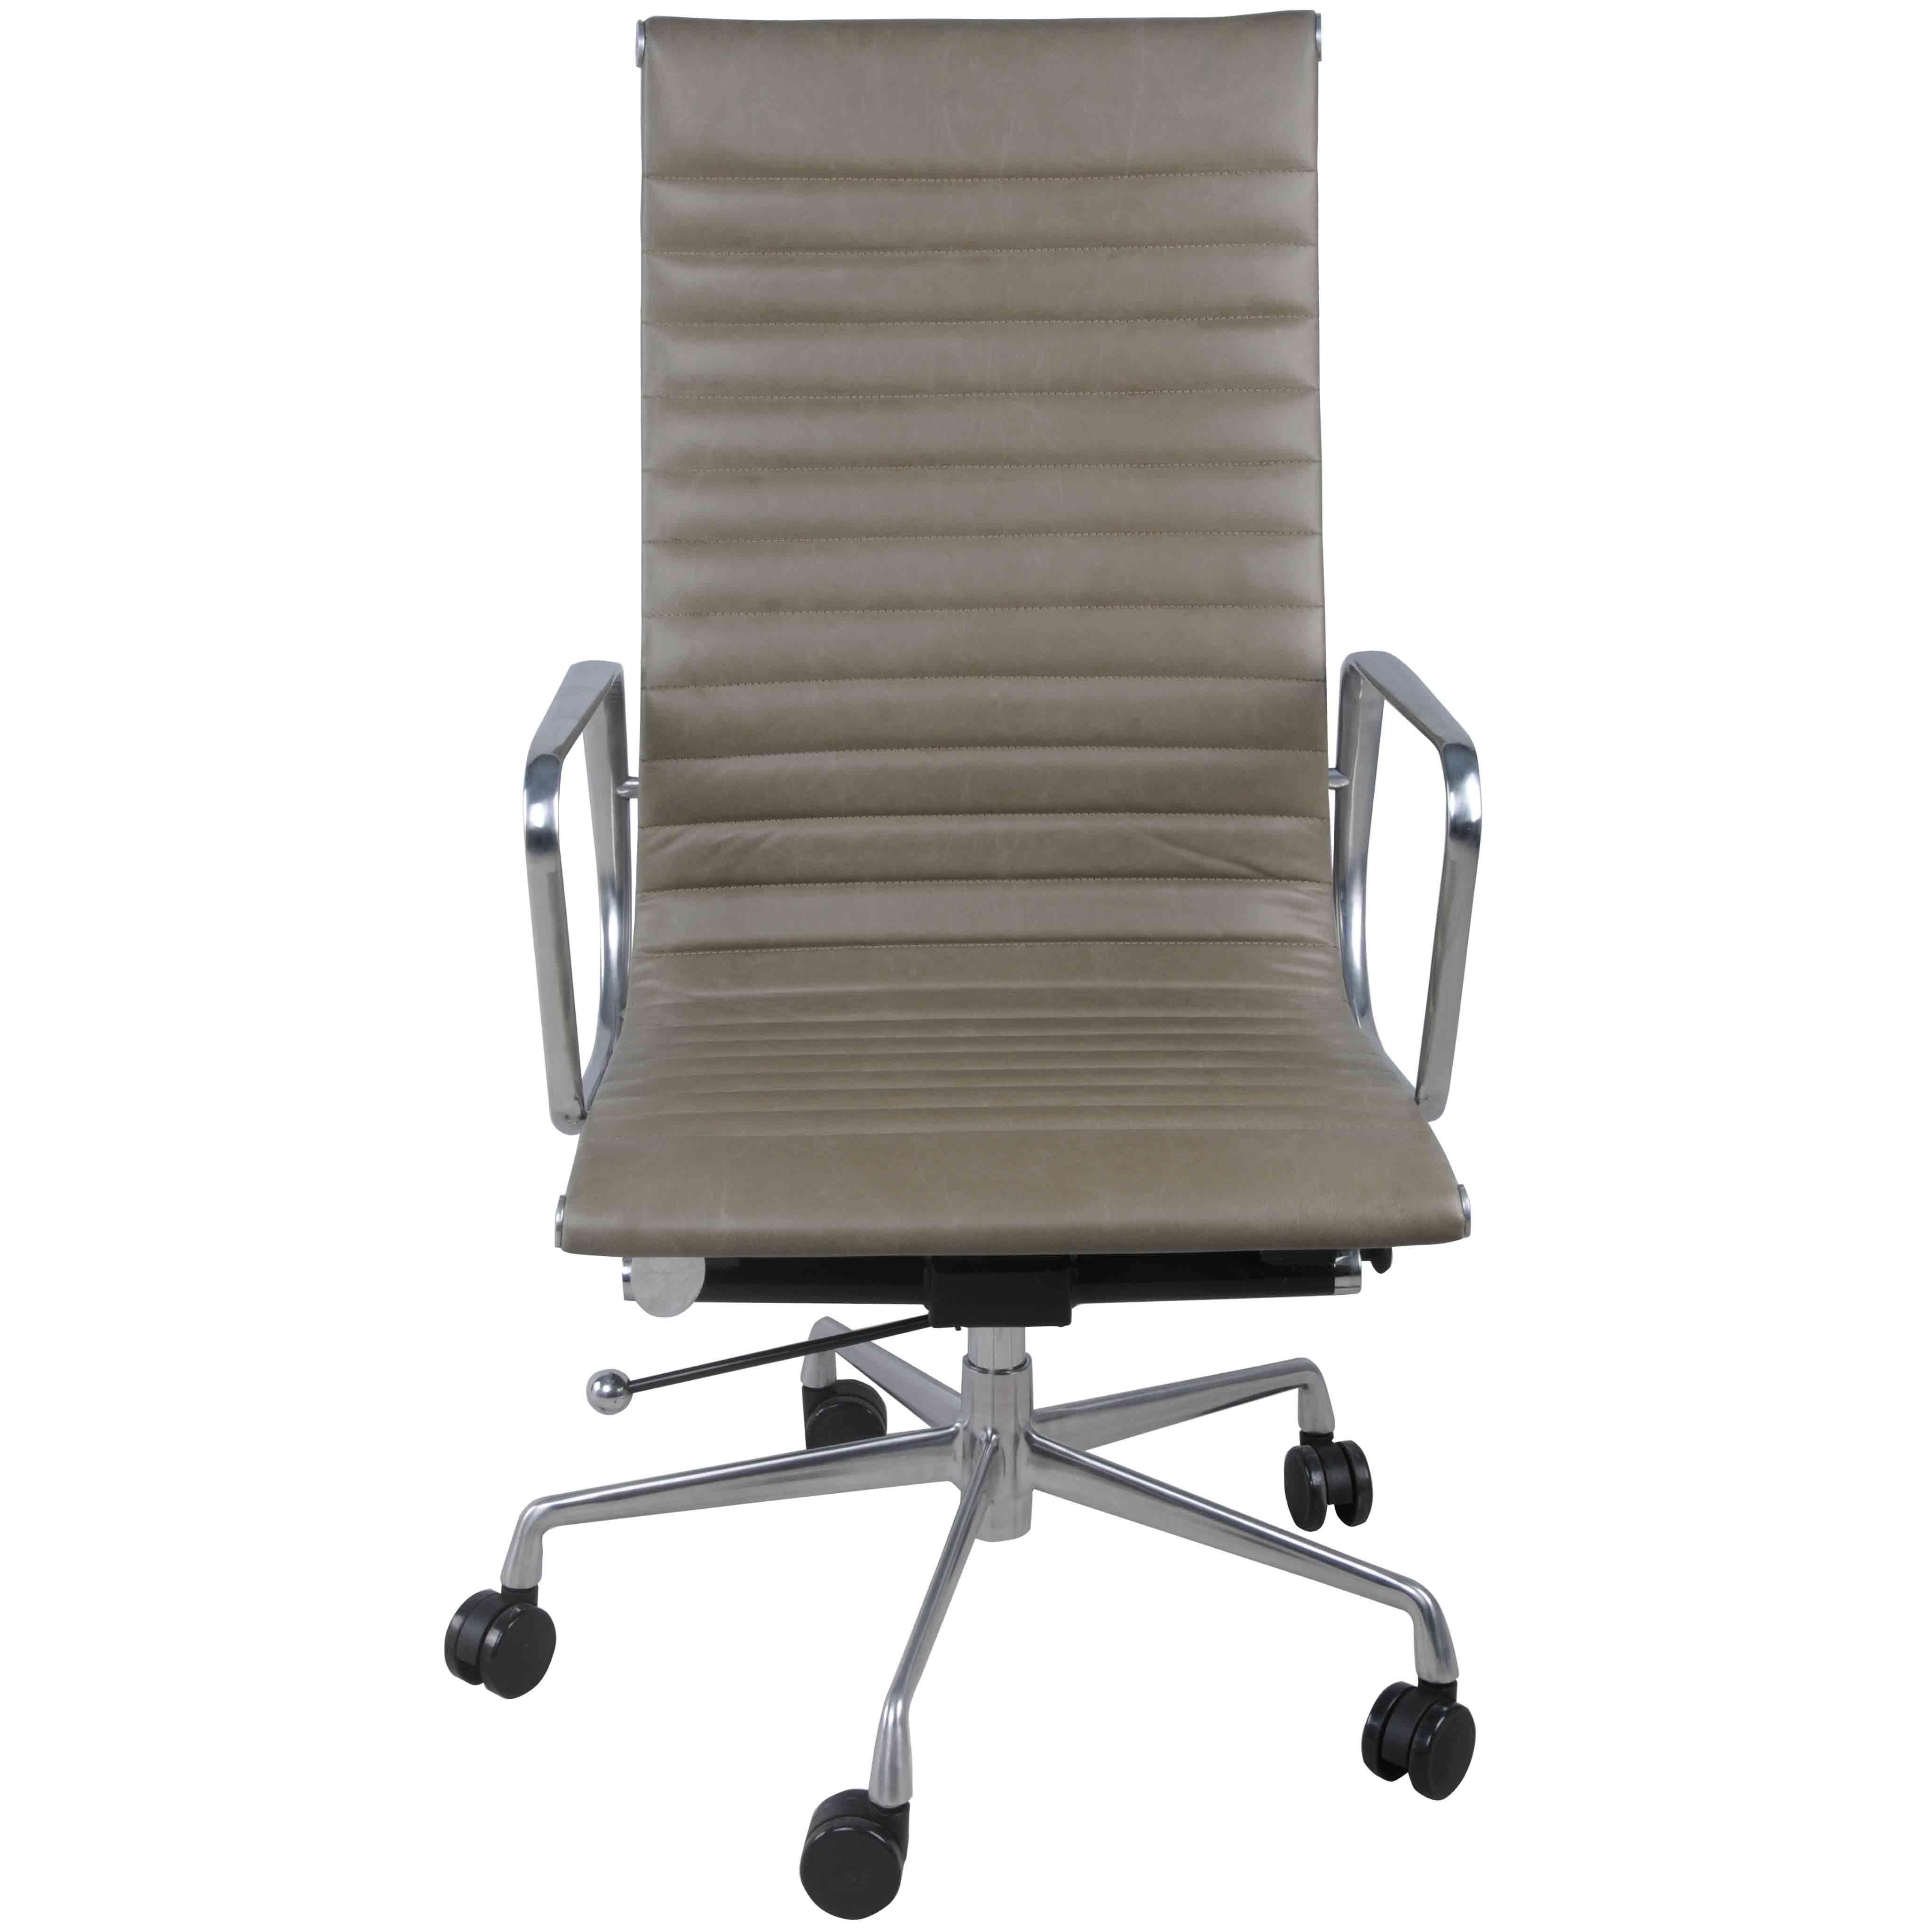 6900005 vs npd furniture stylish affordable for Chair vs chairman